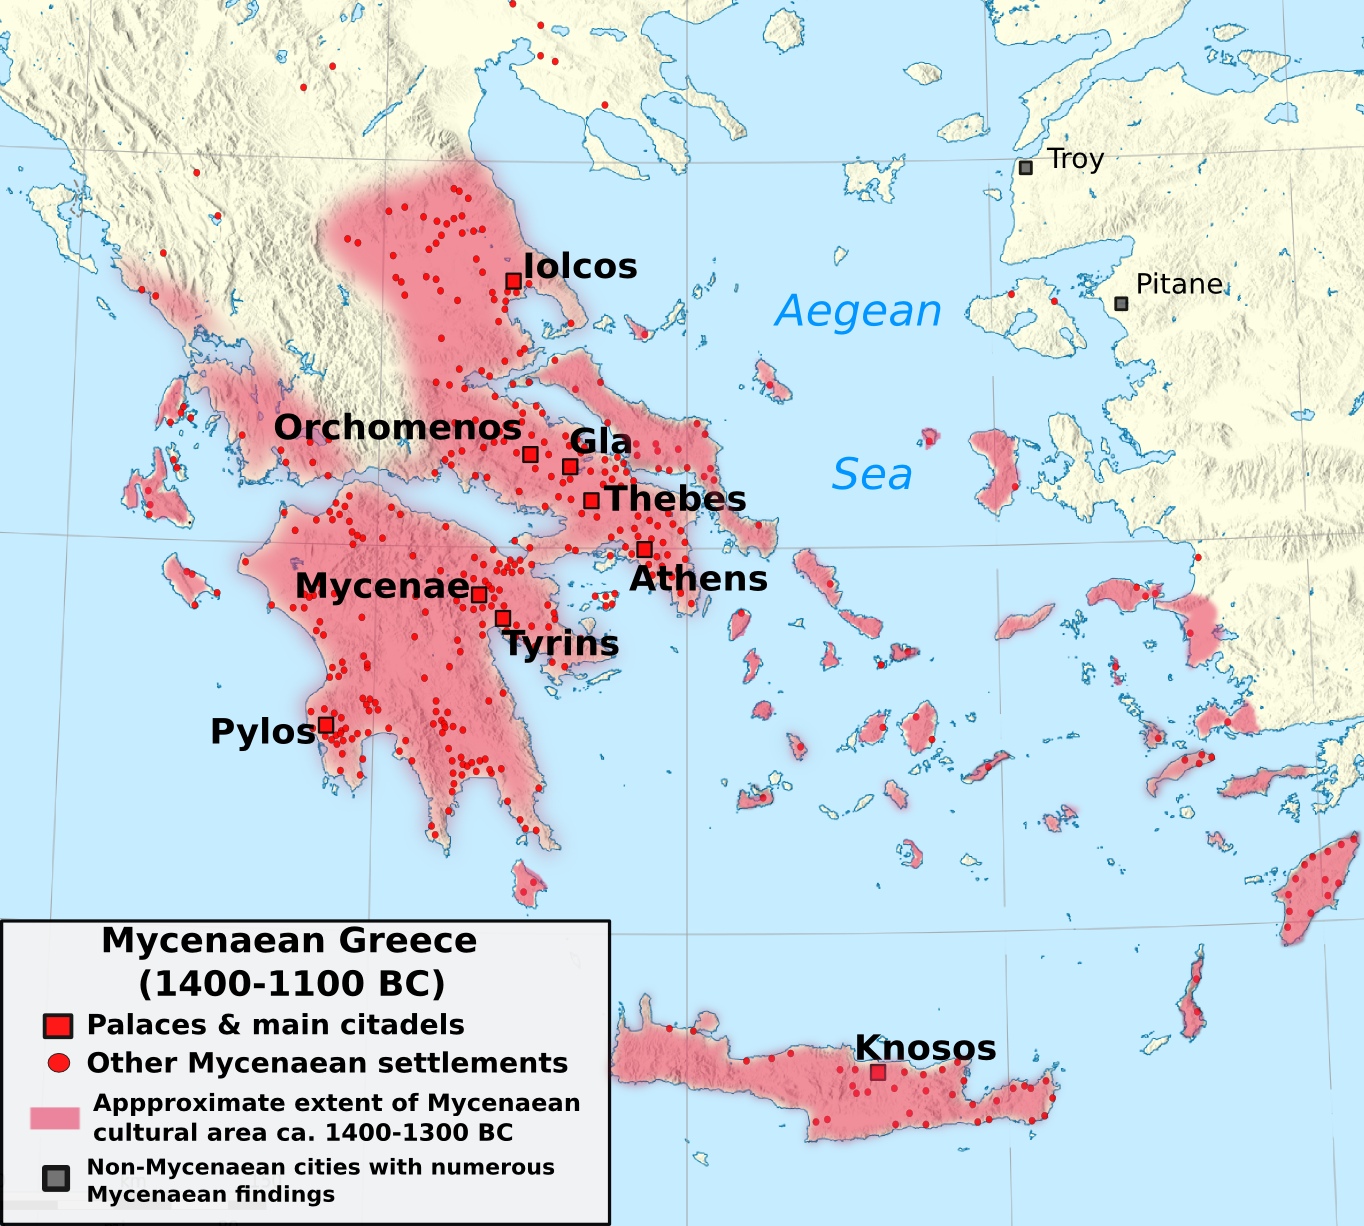 economic growth in ancient pseudoerasmus mycenae2 middot colonies2